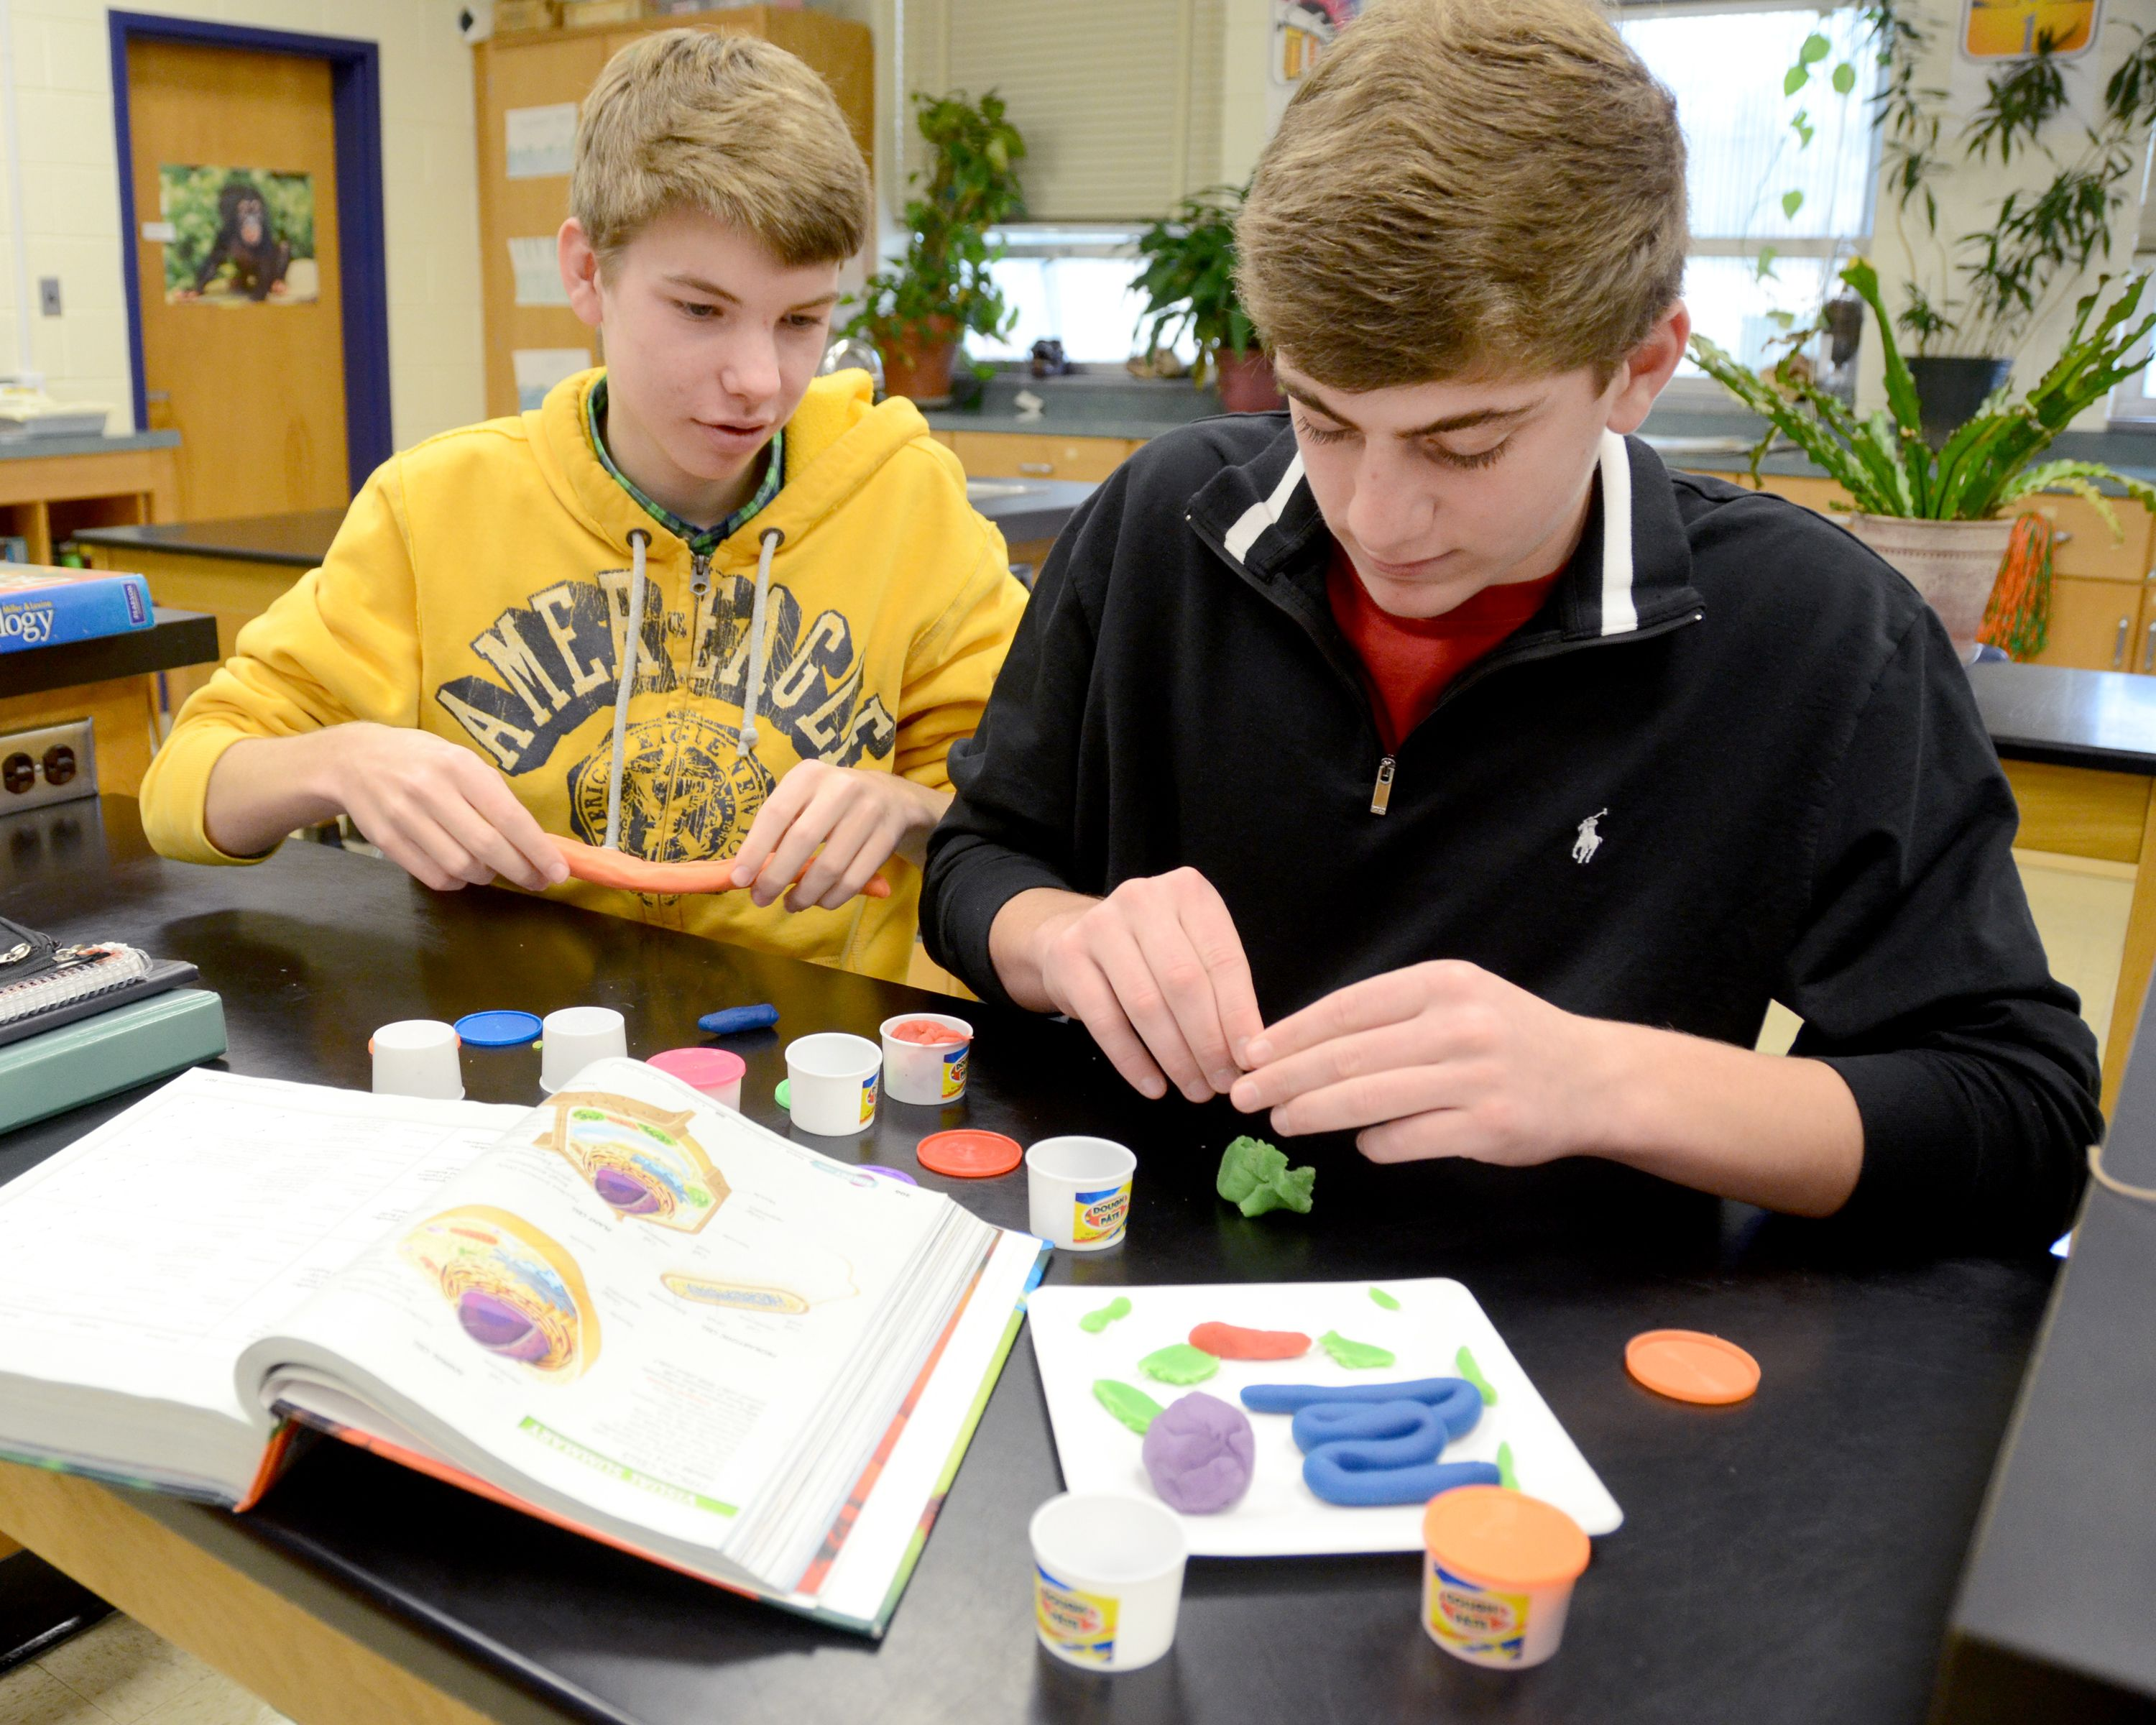 9th Grade Biology Students Use Silly Putty To Construct